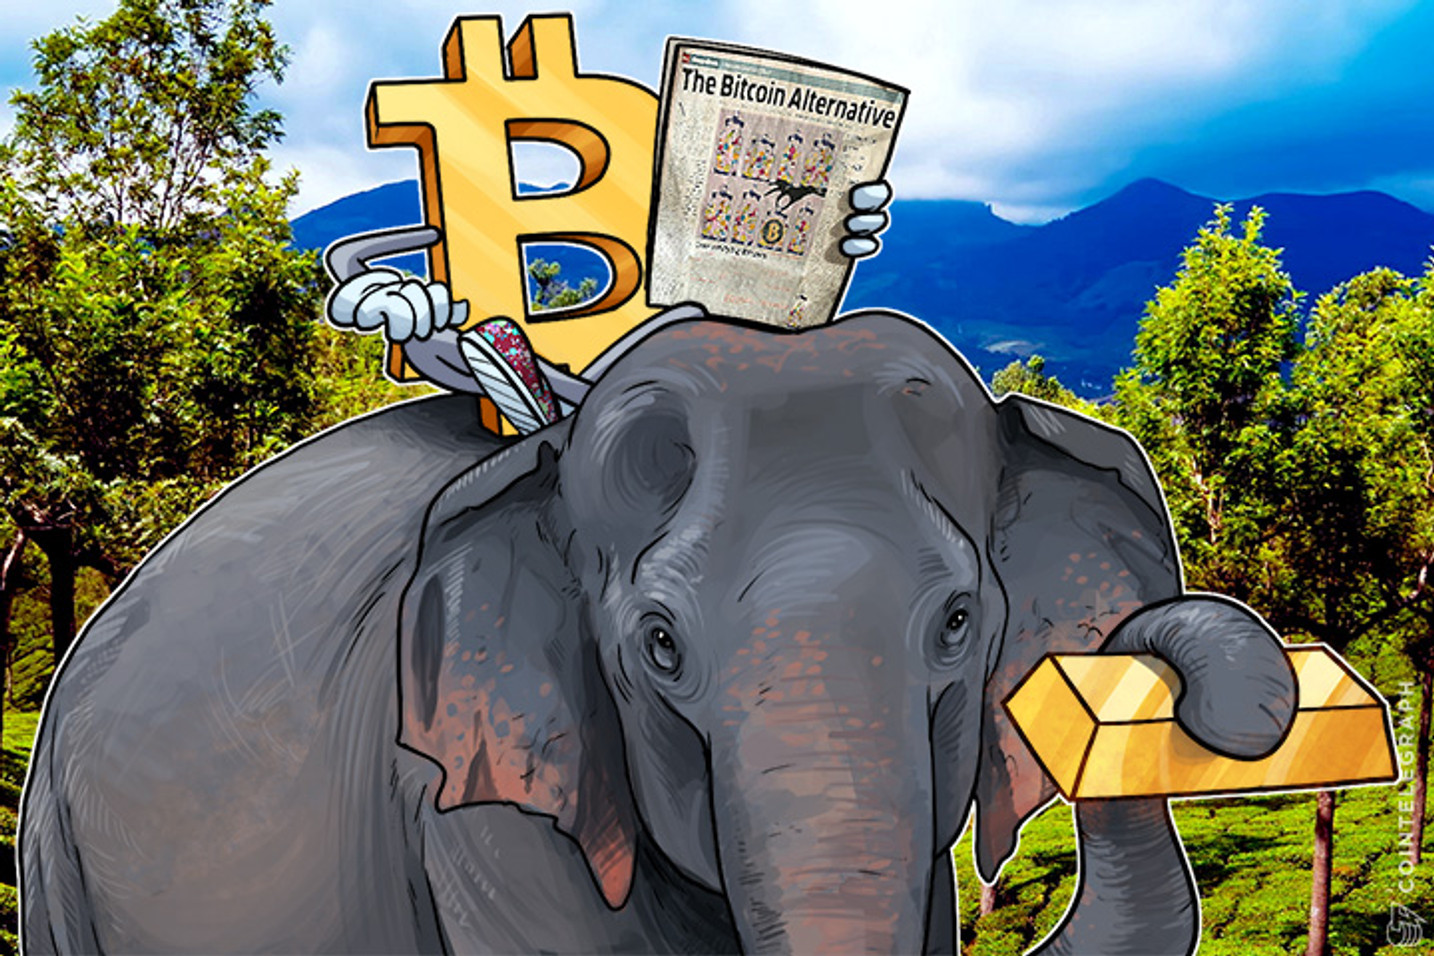 Indian Mainstream Media Covers Bitcoin Actively Amid Gold Confiscation